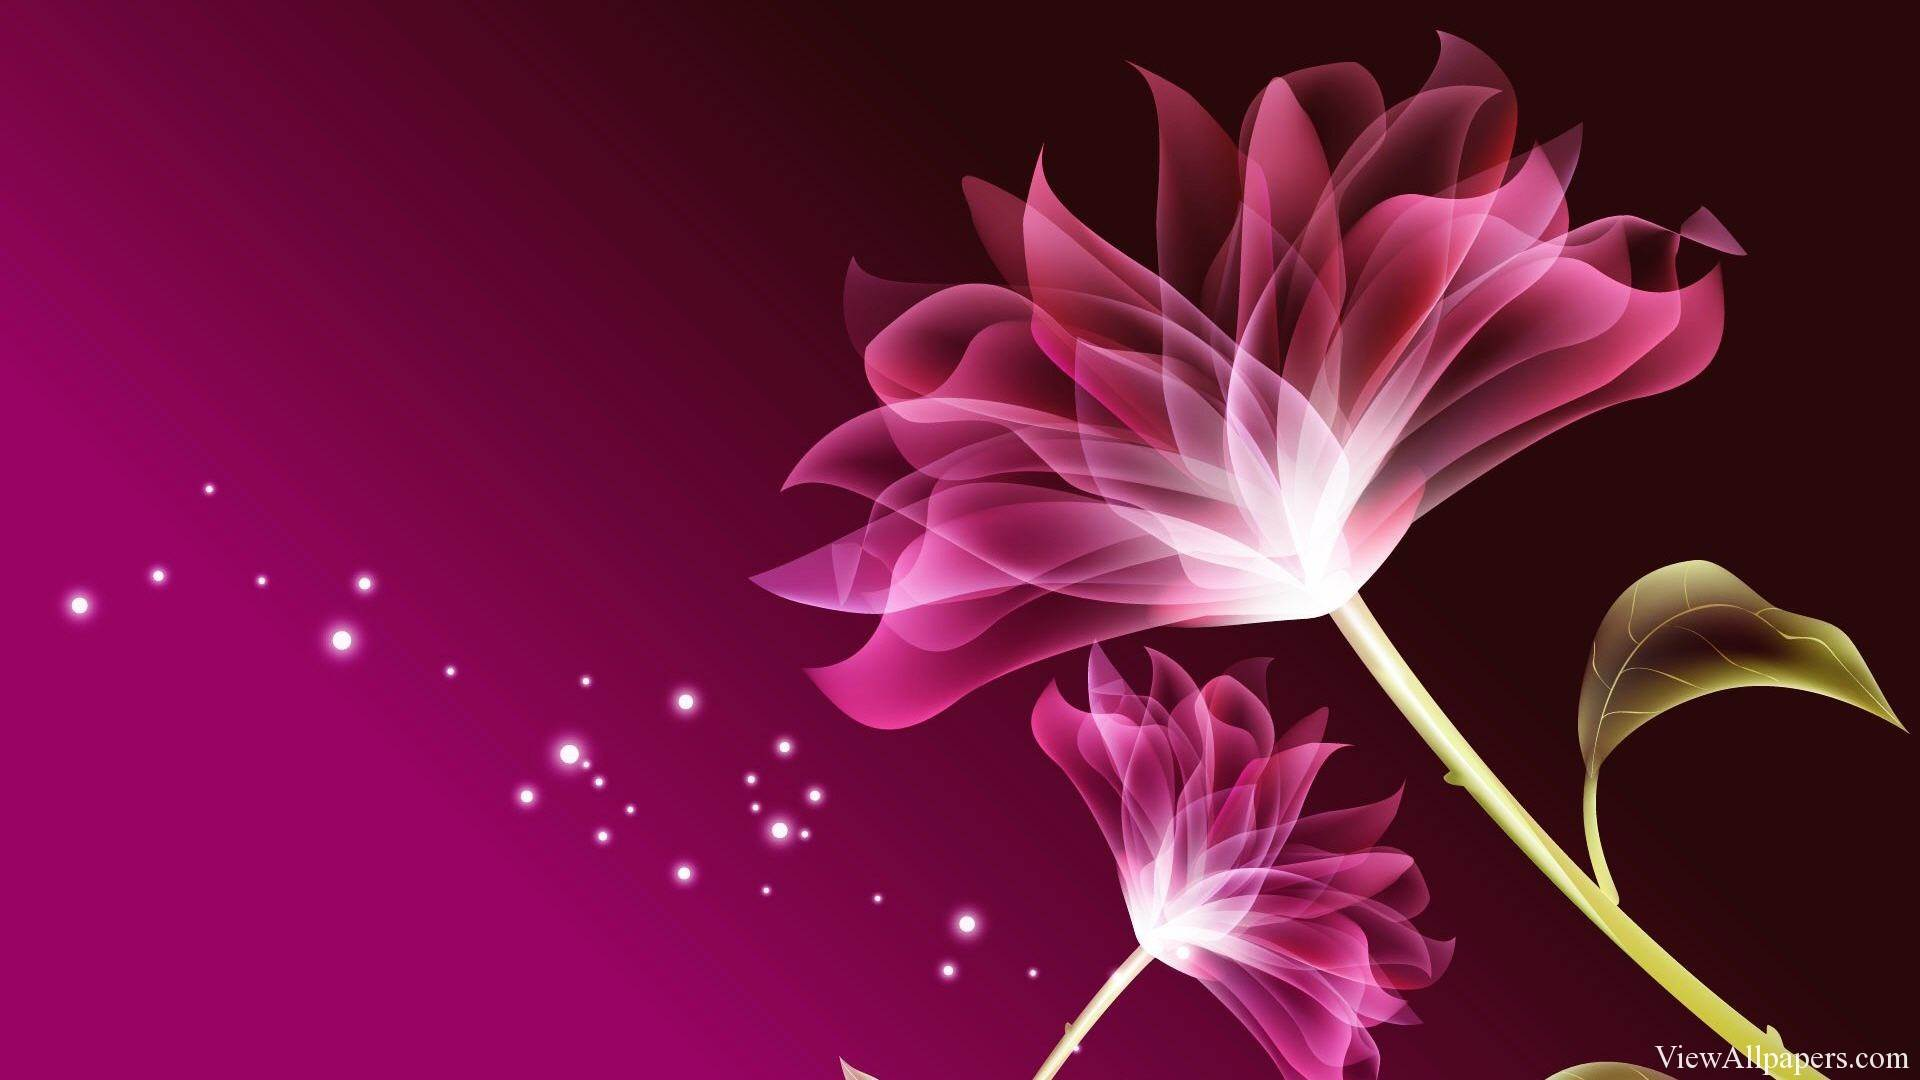 Unknown Beautiful Flowers Flower Wallpapers Free Download 1920x1080